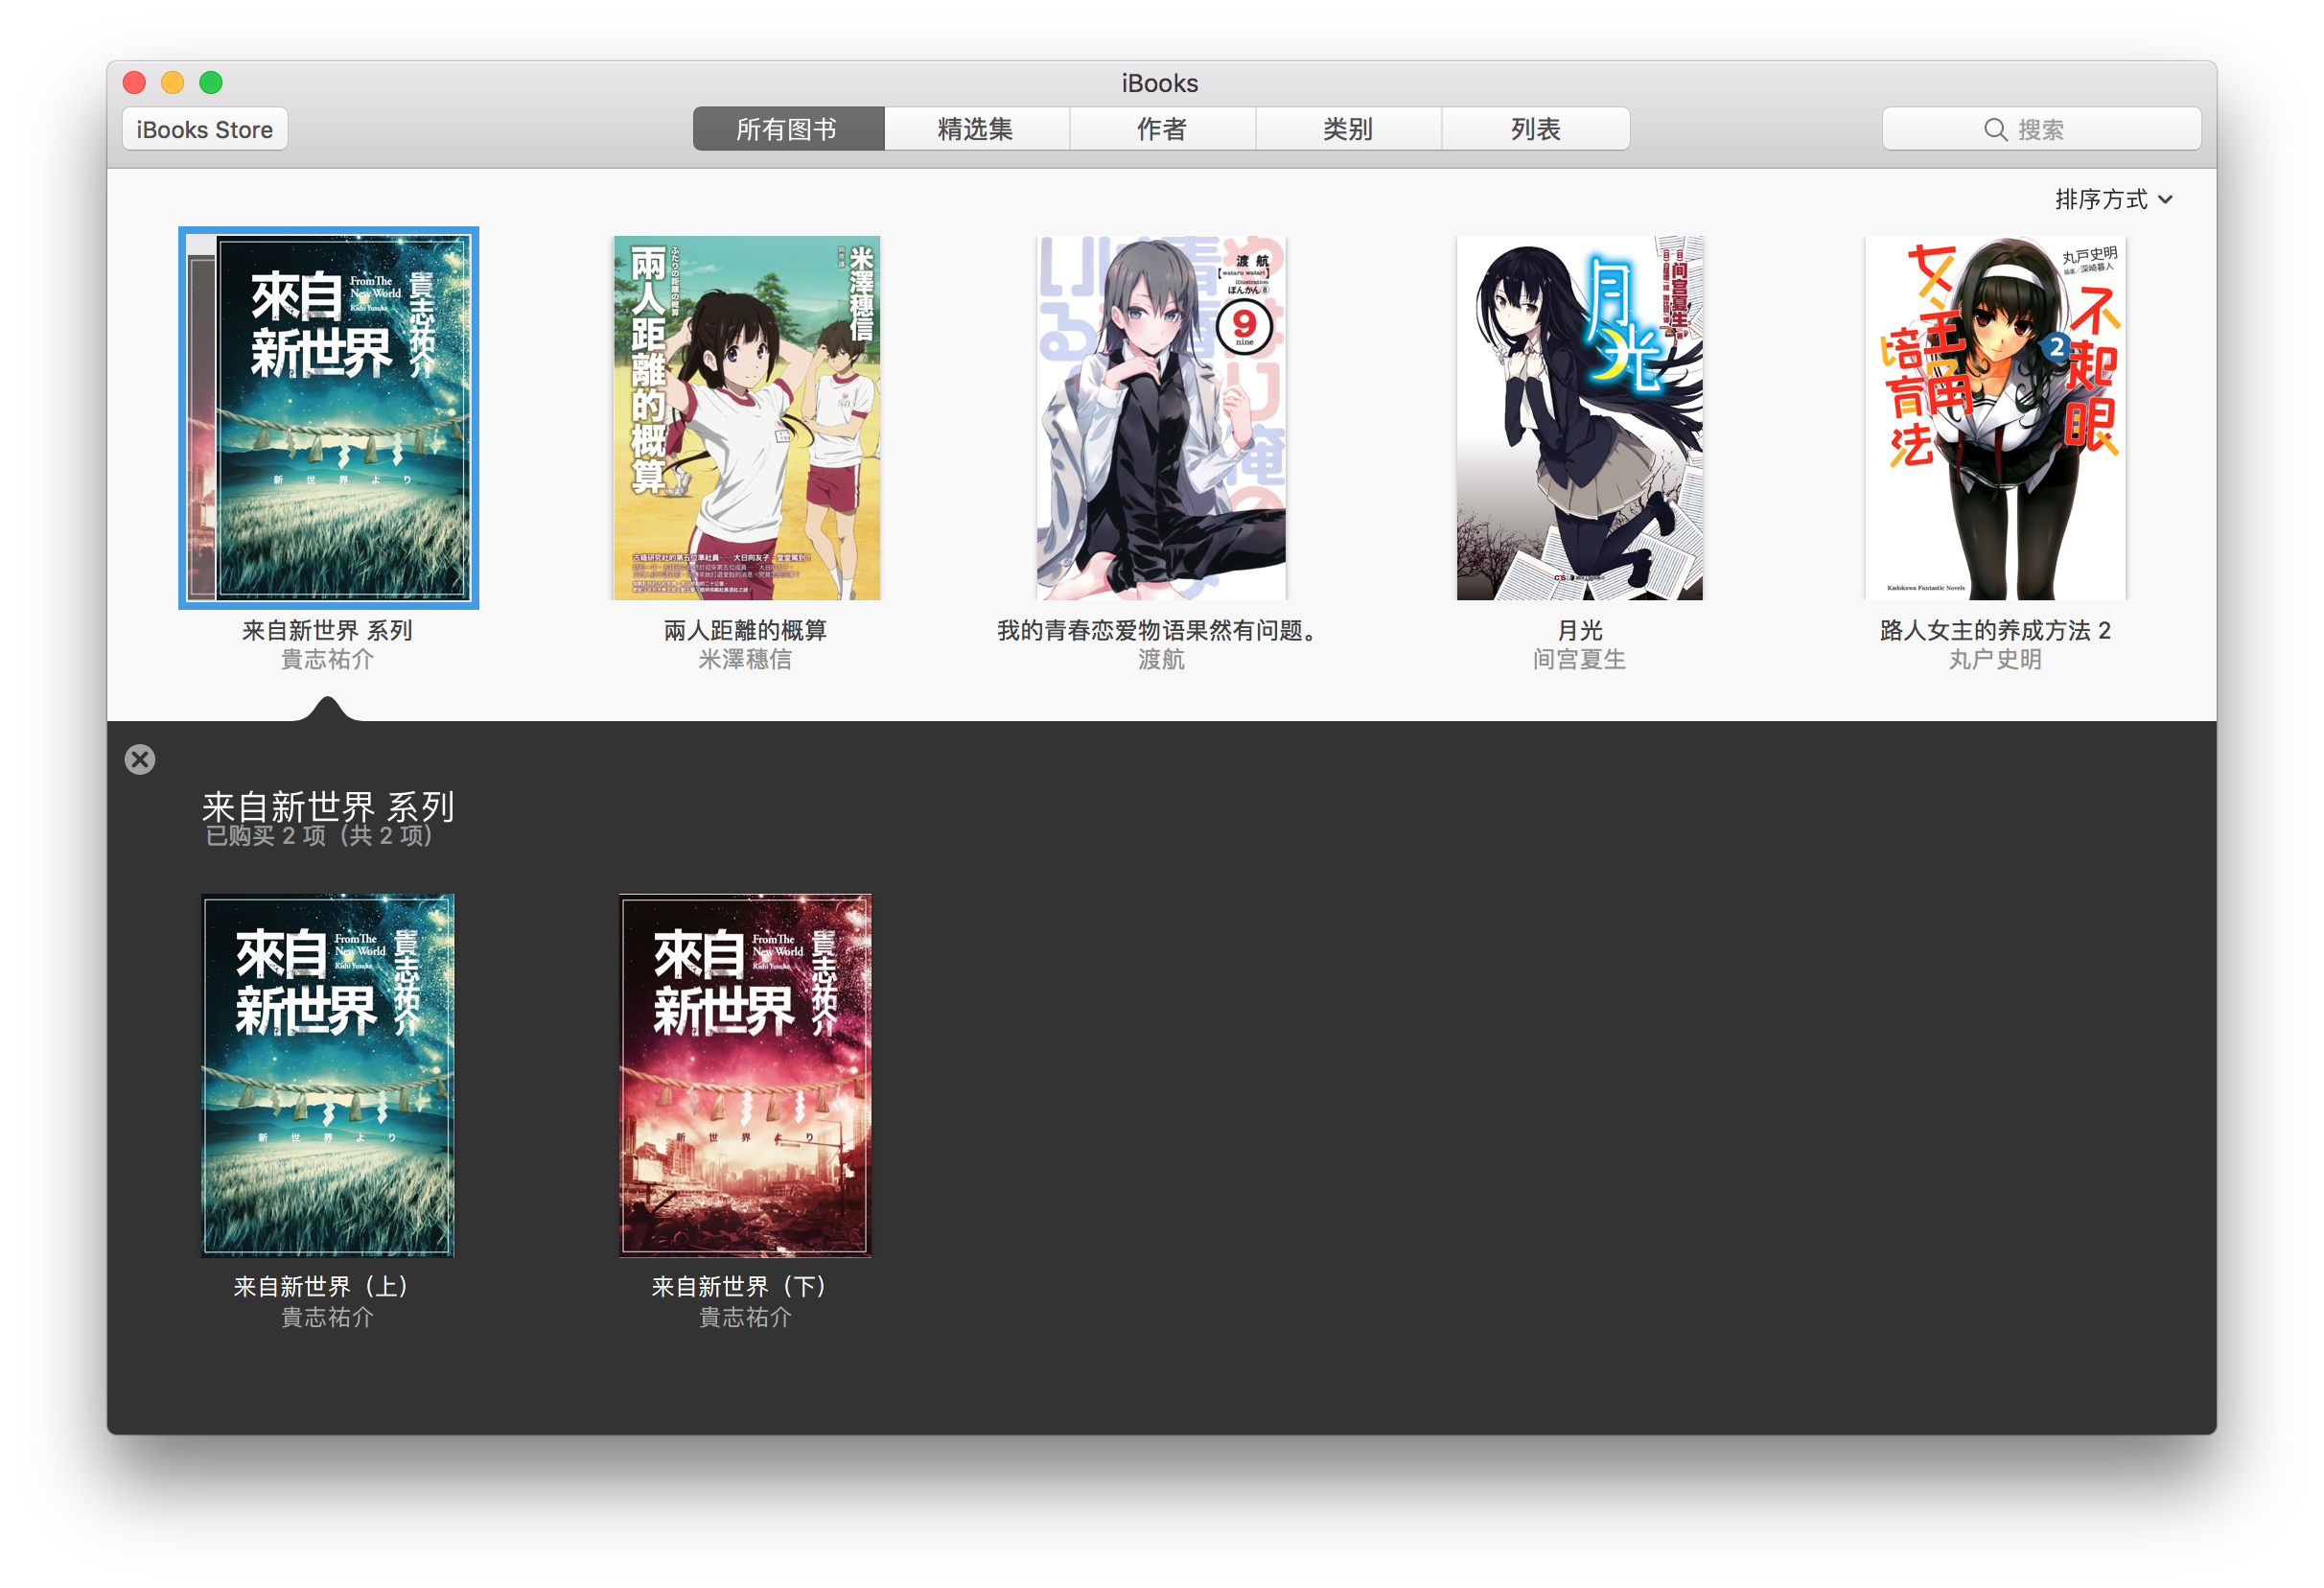 iBooks display series section